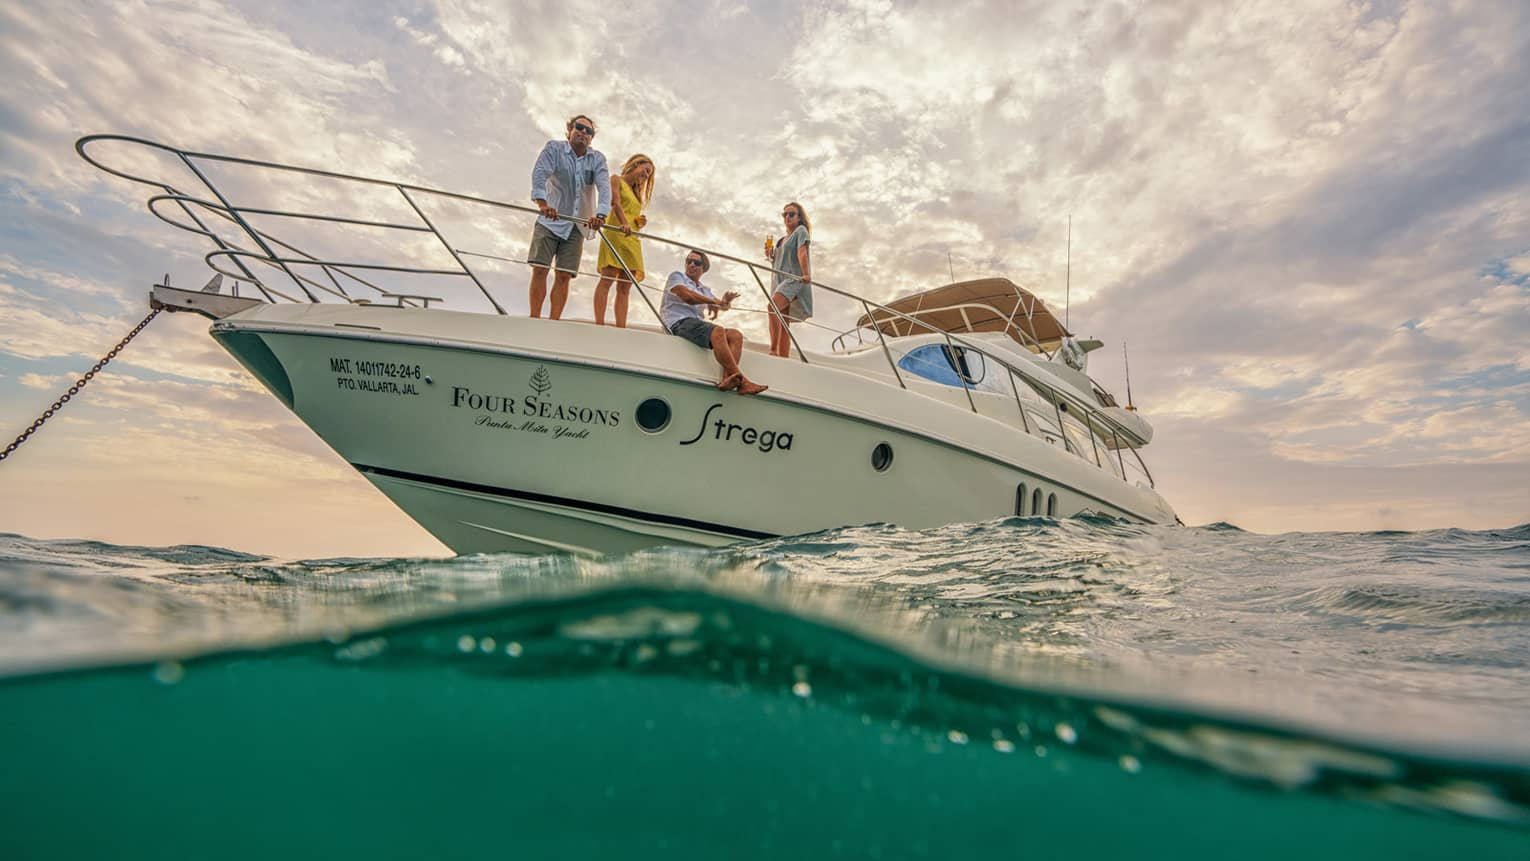 White Four Seasons motor yacht anchored in ocean, two men and two women look out at sea